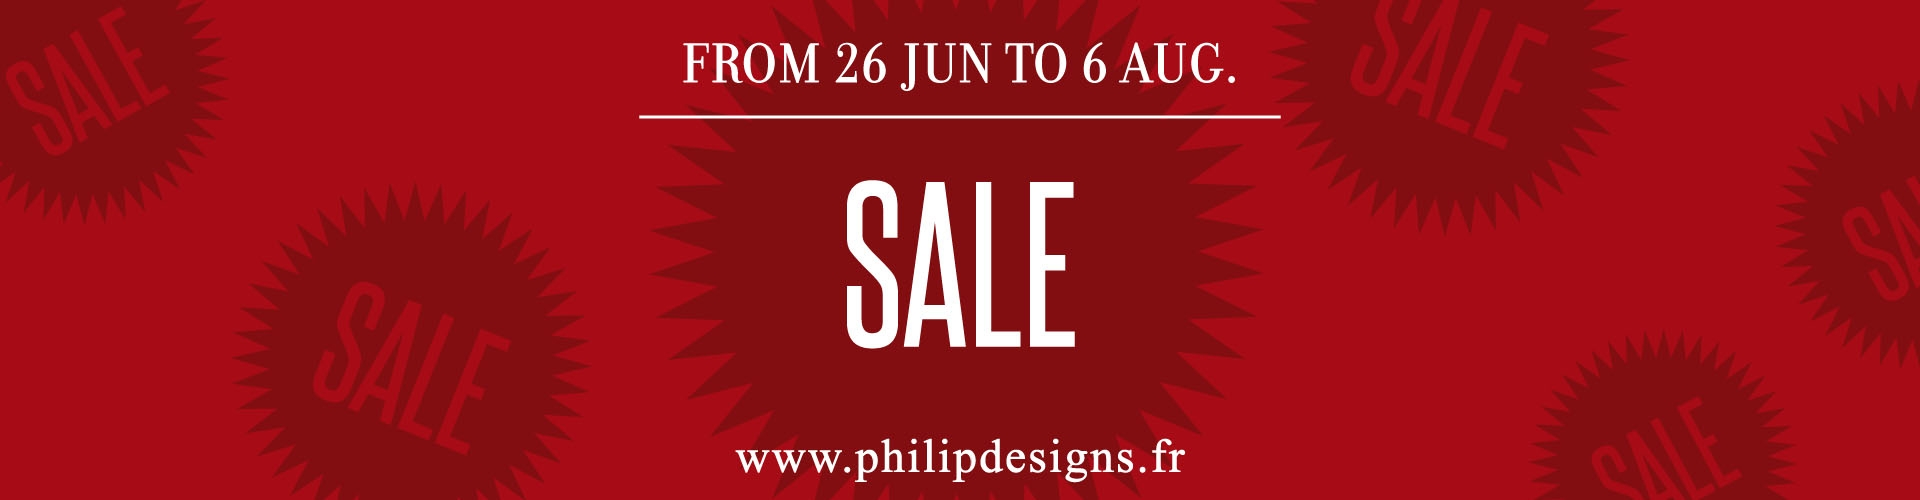 Sale products for your home, bike or helmet. Vintage and kustom style products.